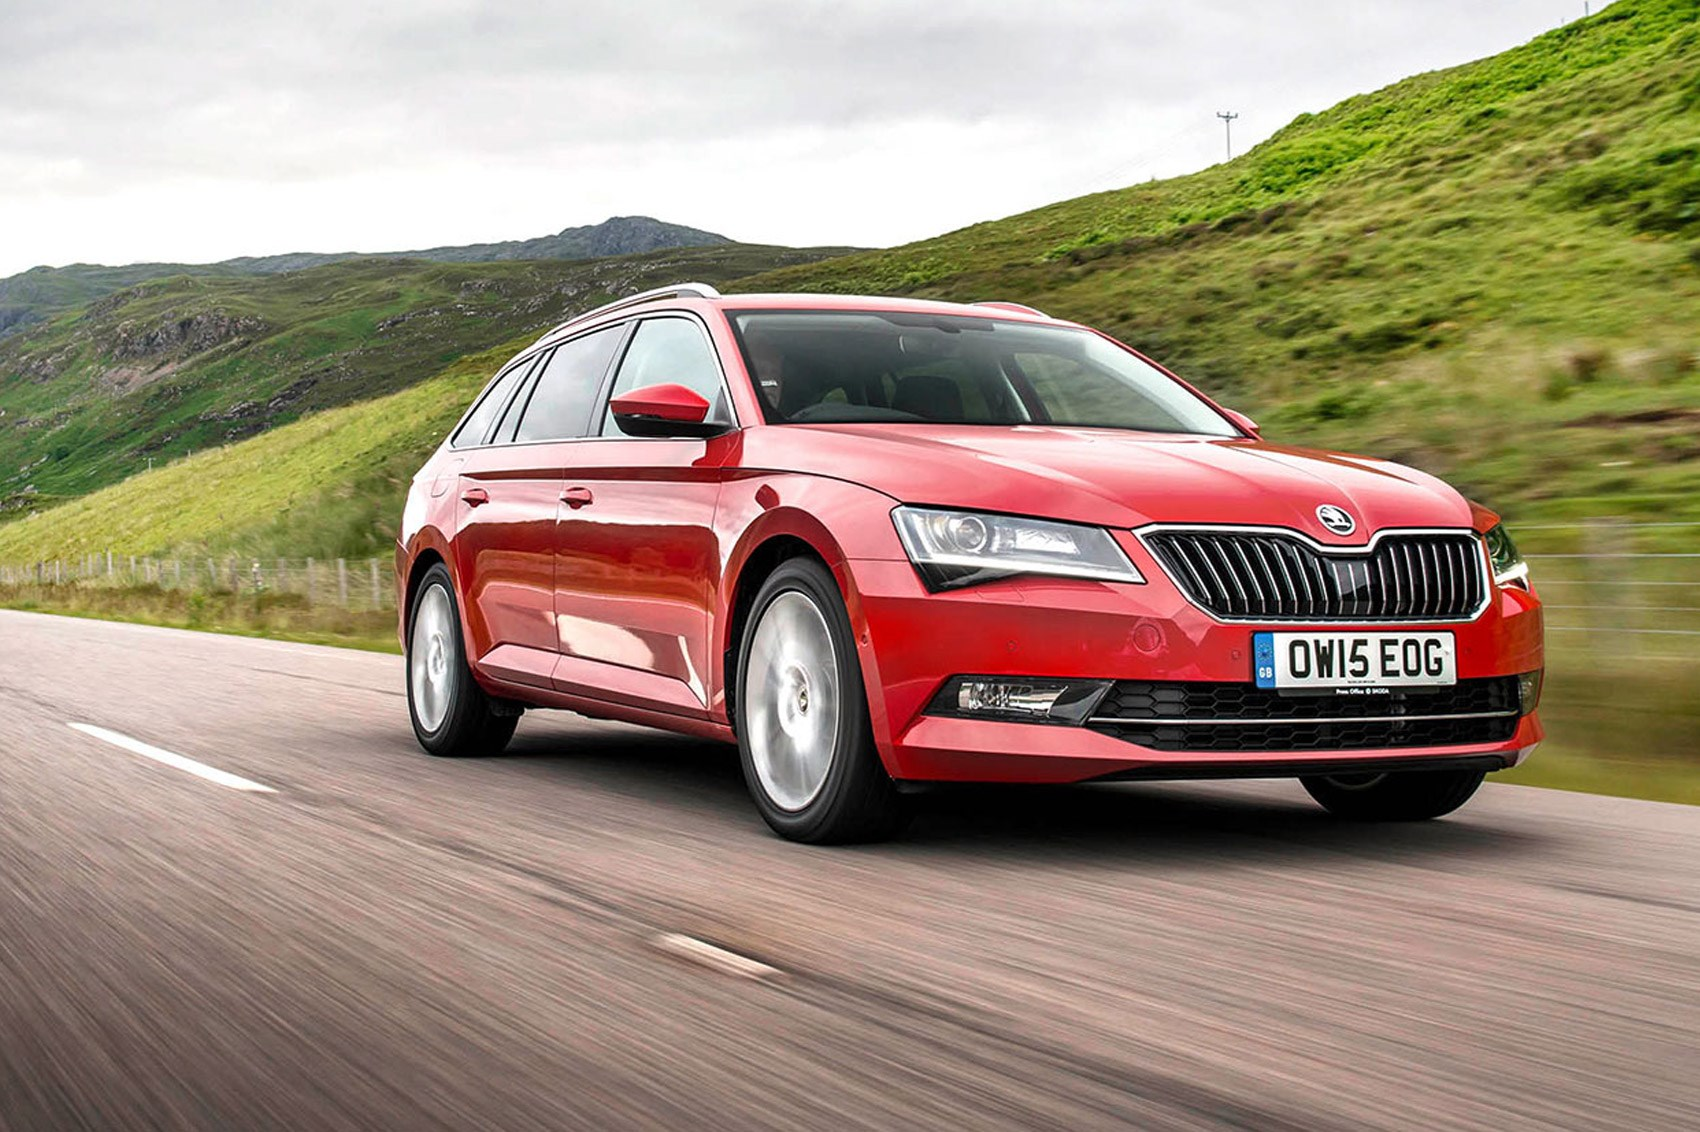 skoda superb 2 0 tsi 280 4x4 estate first drive car may 2016 car magazine. Black Bedroom Furniture Sets. Home Design Ideas